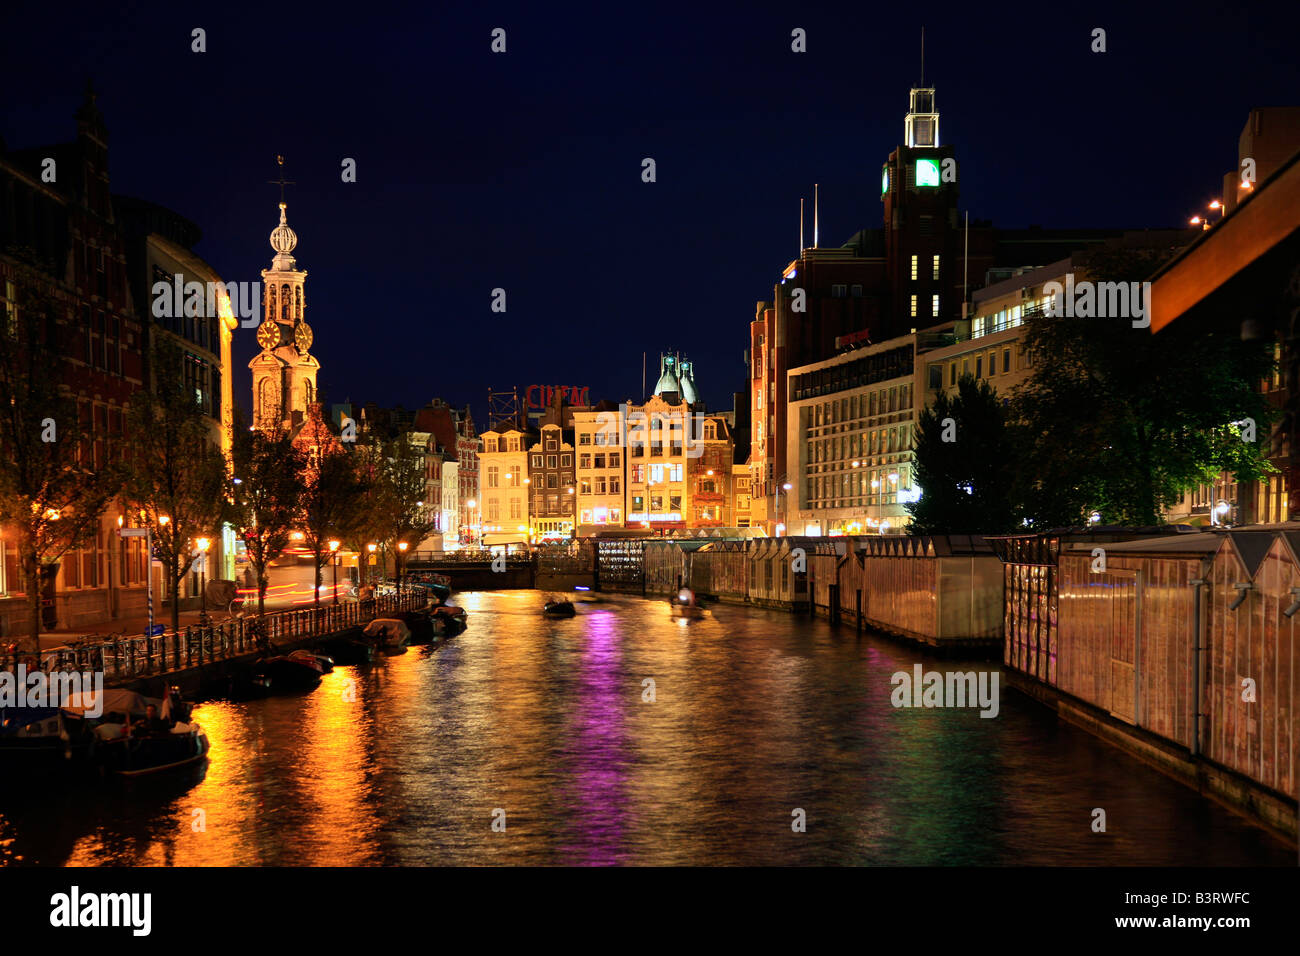 Amsterdam Singel canal at beautiful calm night with boats and colourful lighting with reflections,  the Netherlands Stock Photo